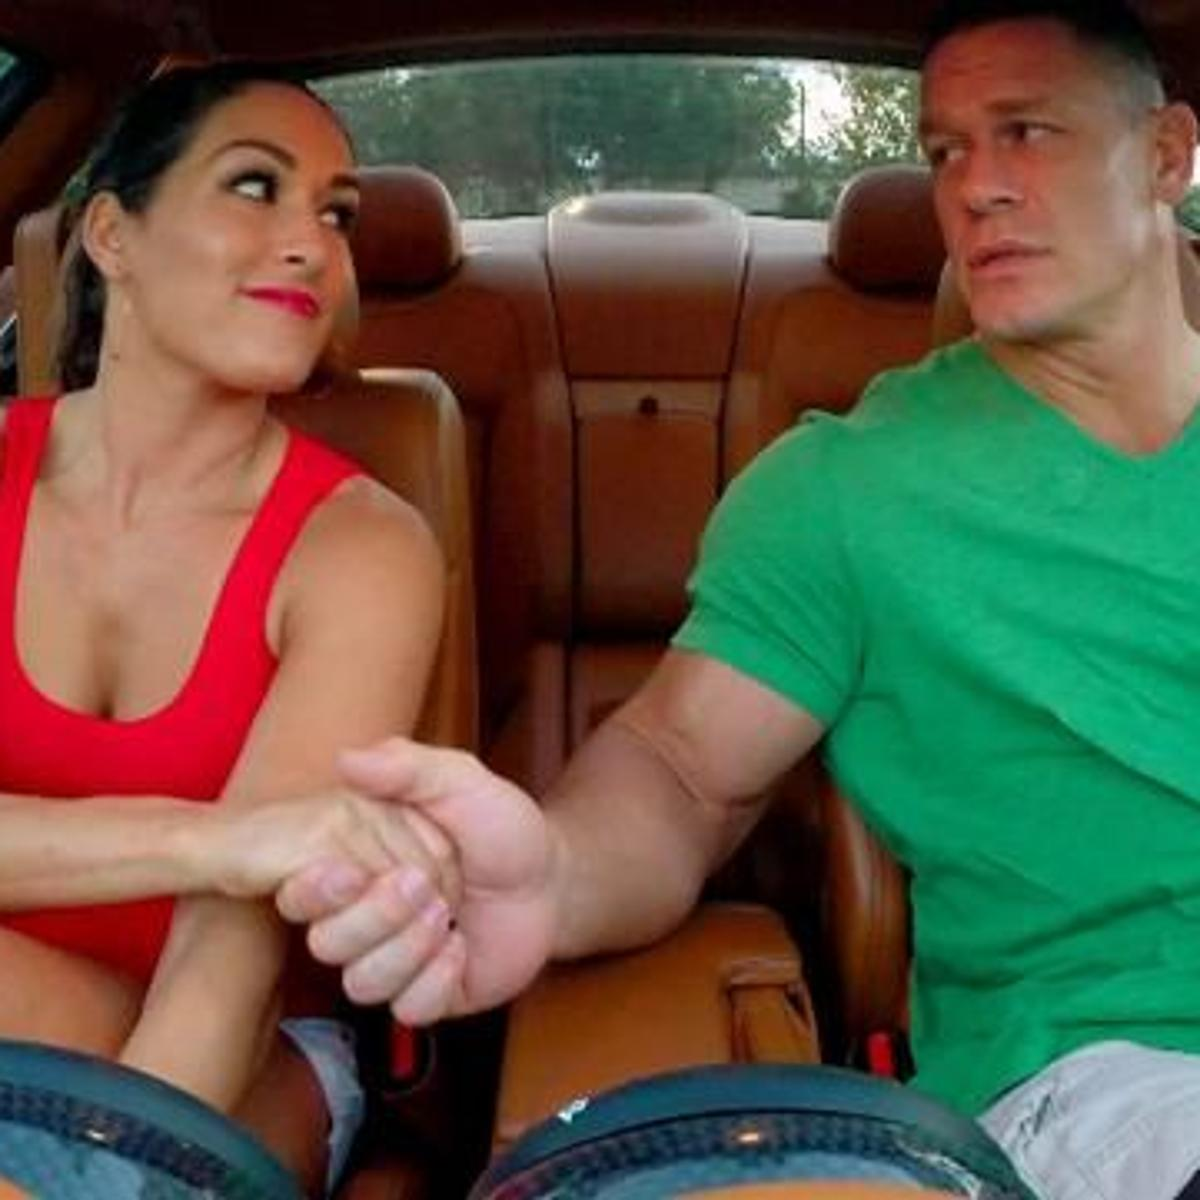 Next Door Nikki total divas' recap: john cena outduels nikki bella in beer